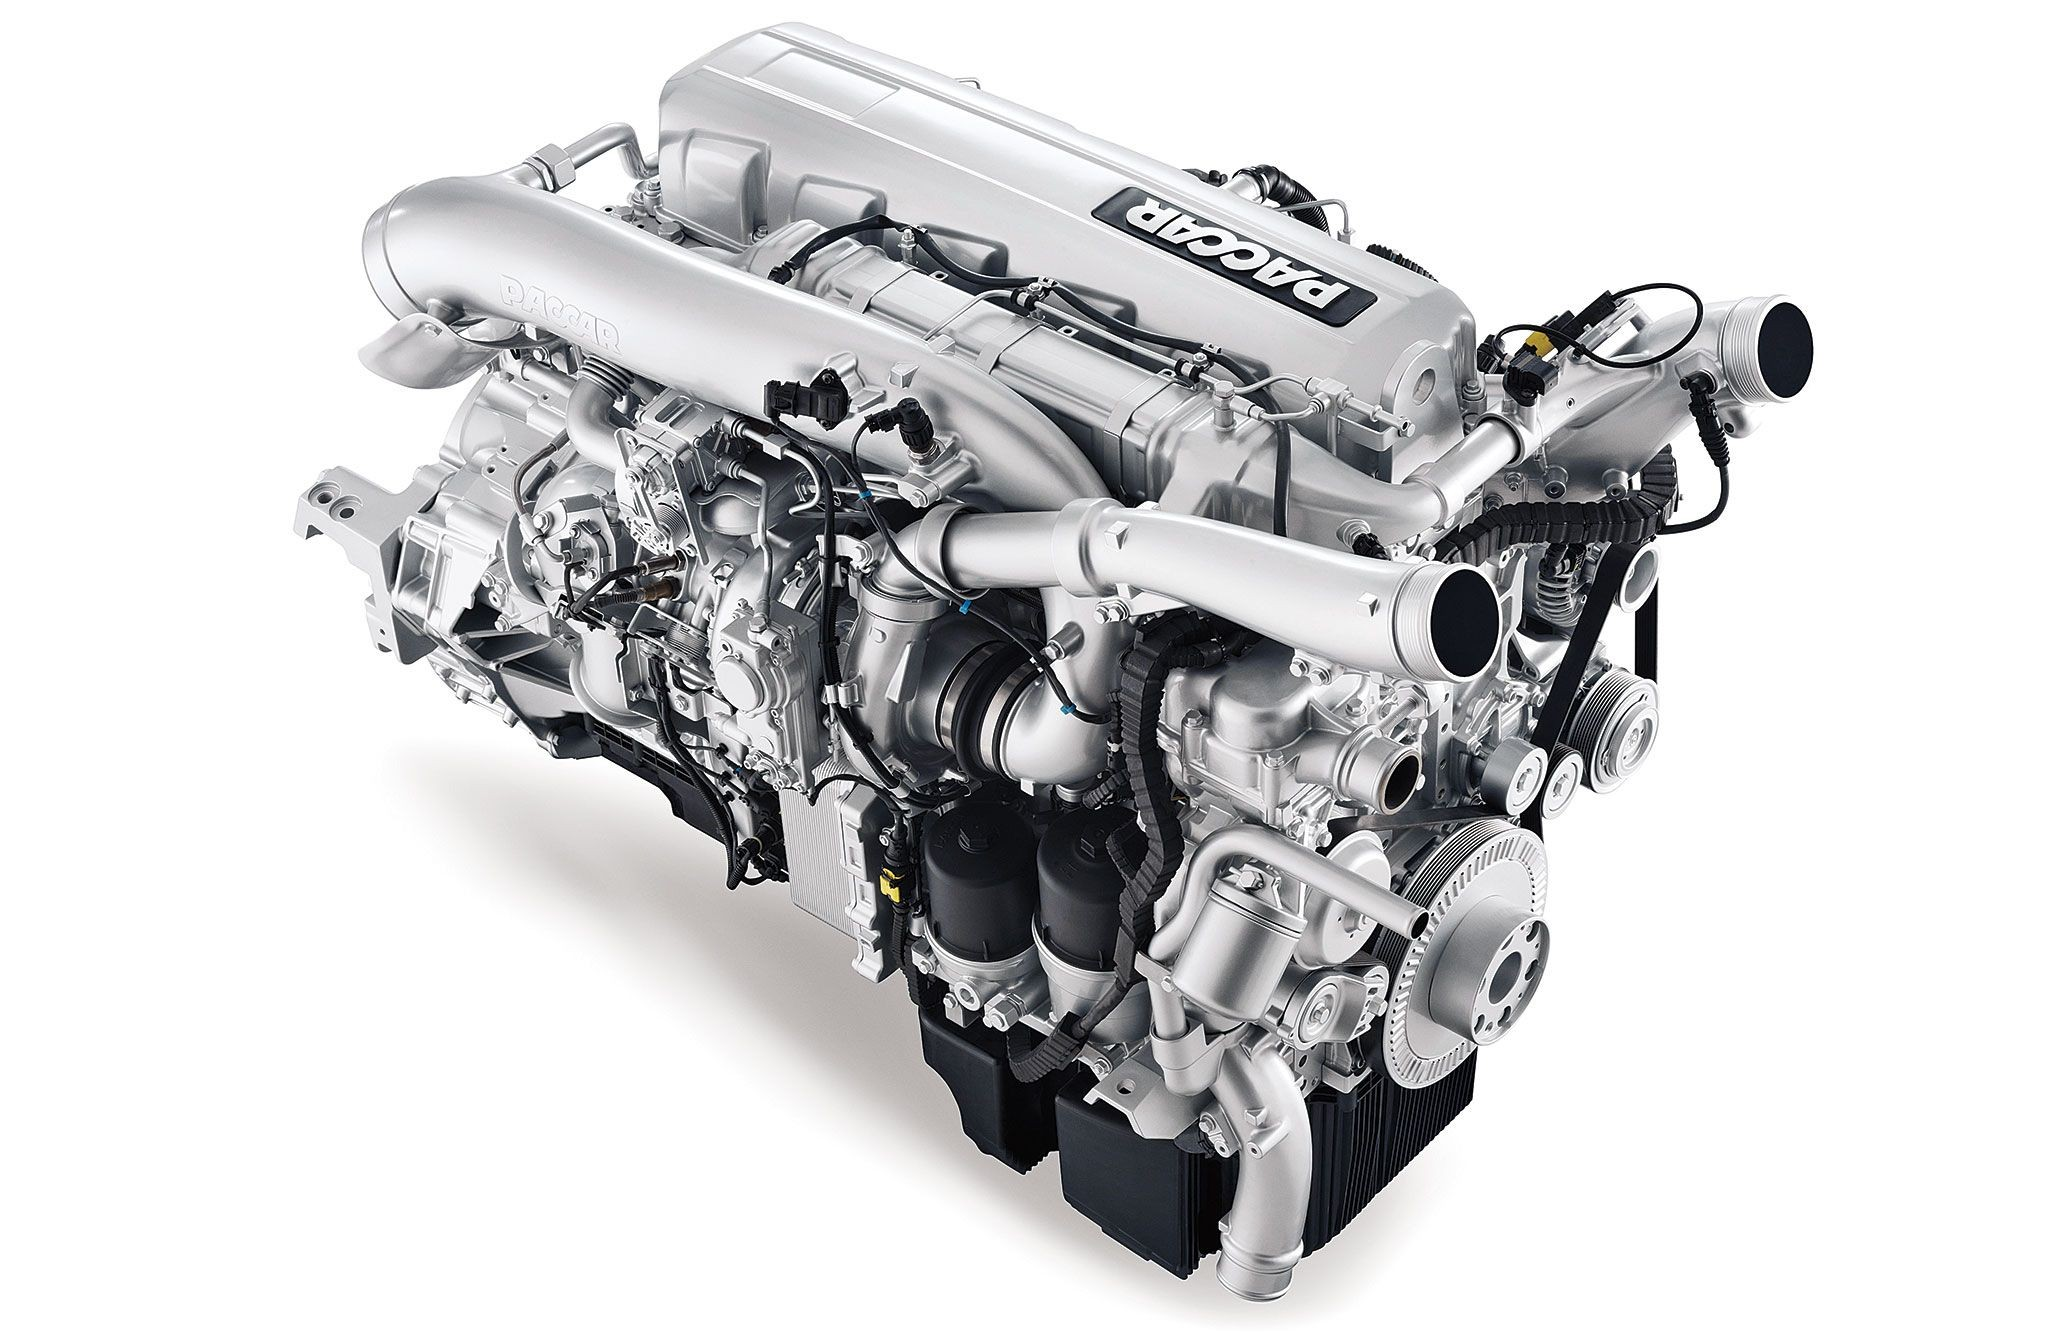 Paccar Mx 13 Engine Diagram A Semi Truck Diesel Engine that Makes 500 Hp and 1 850 Lb Ft Of torque